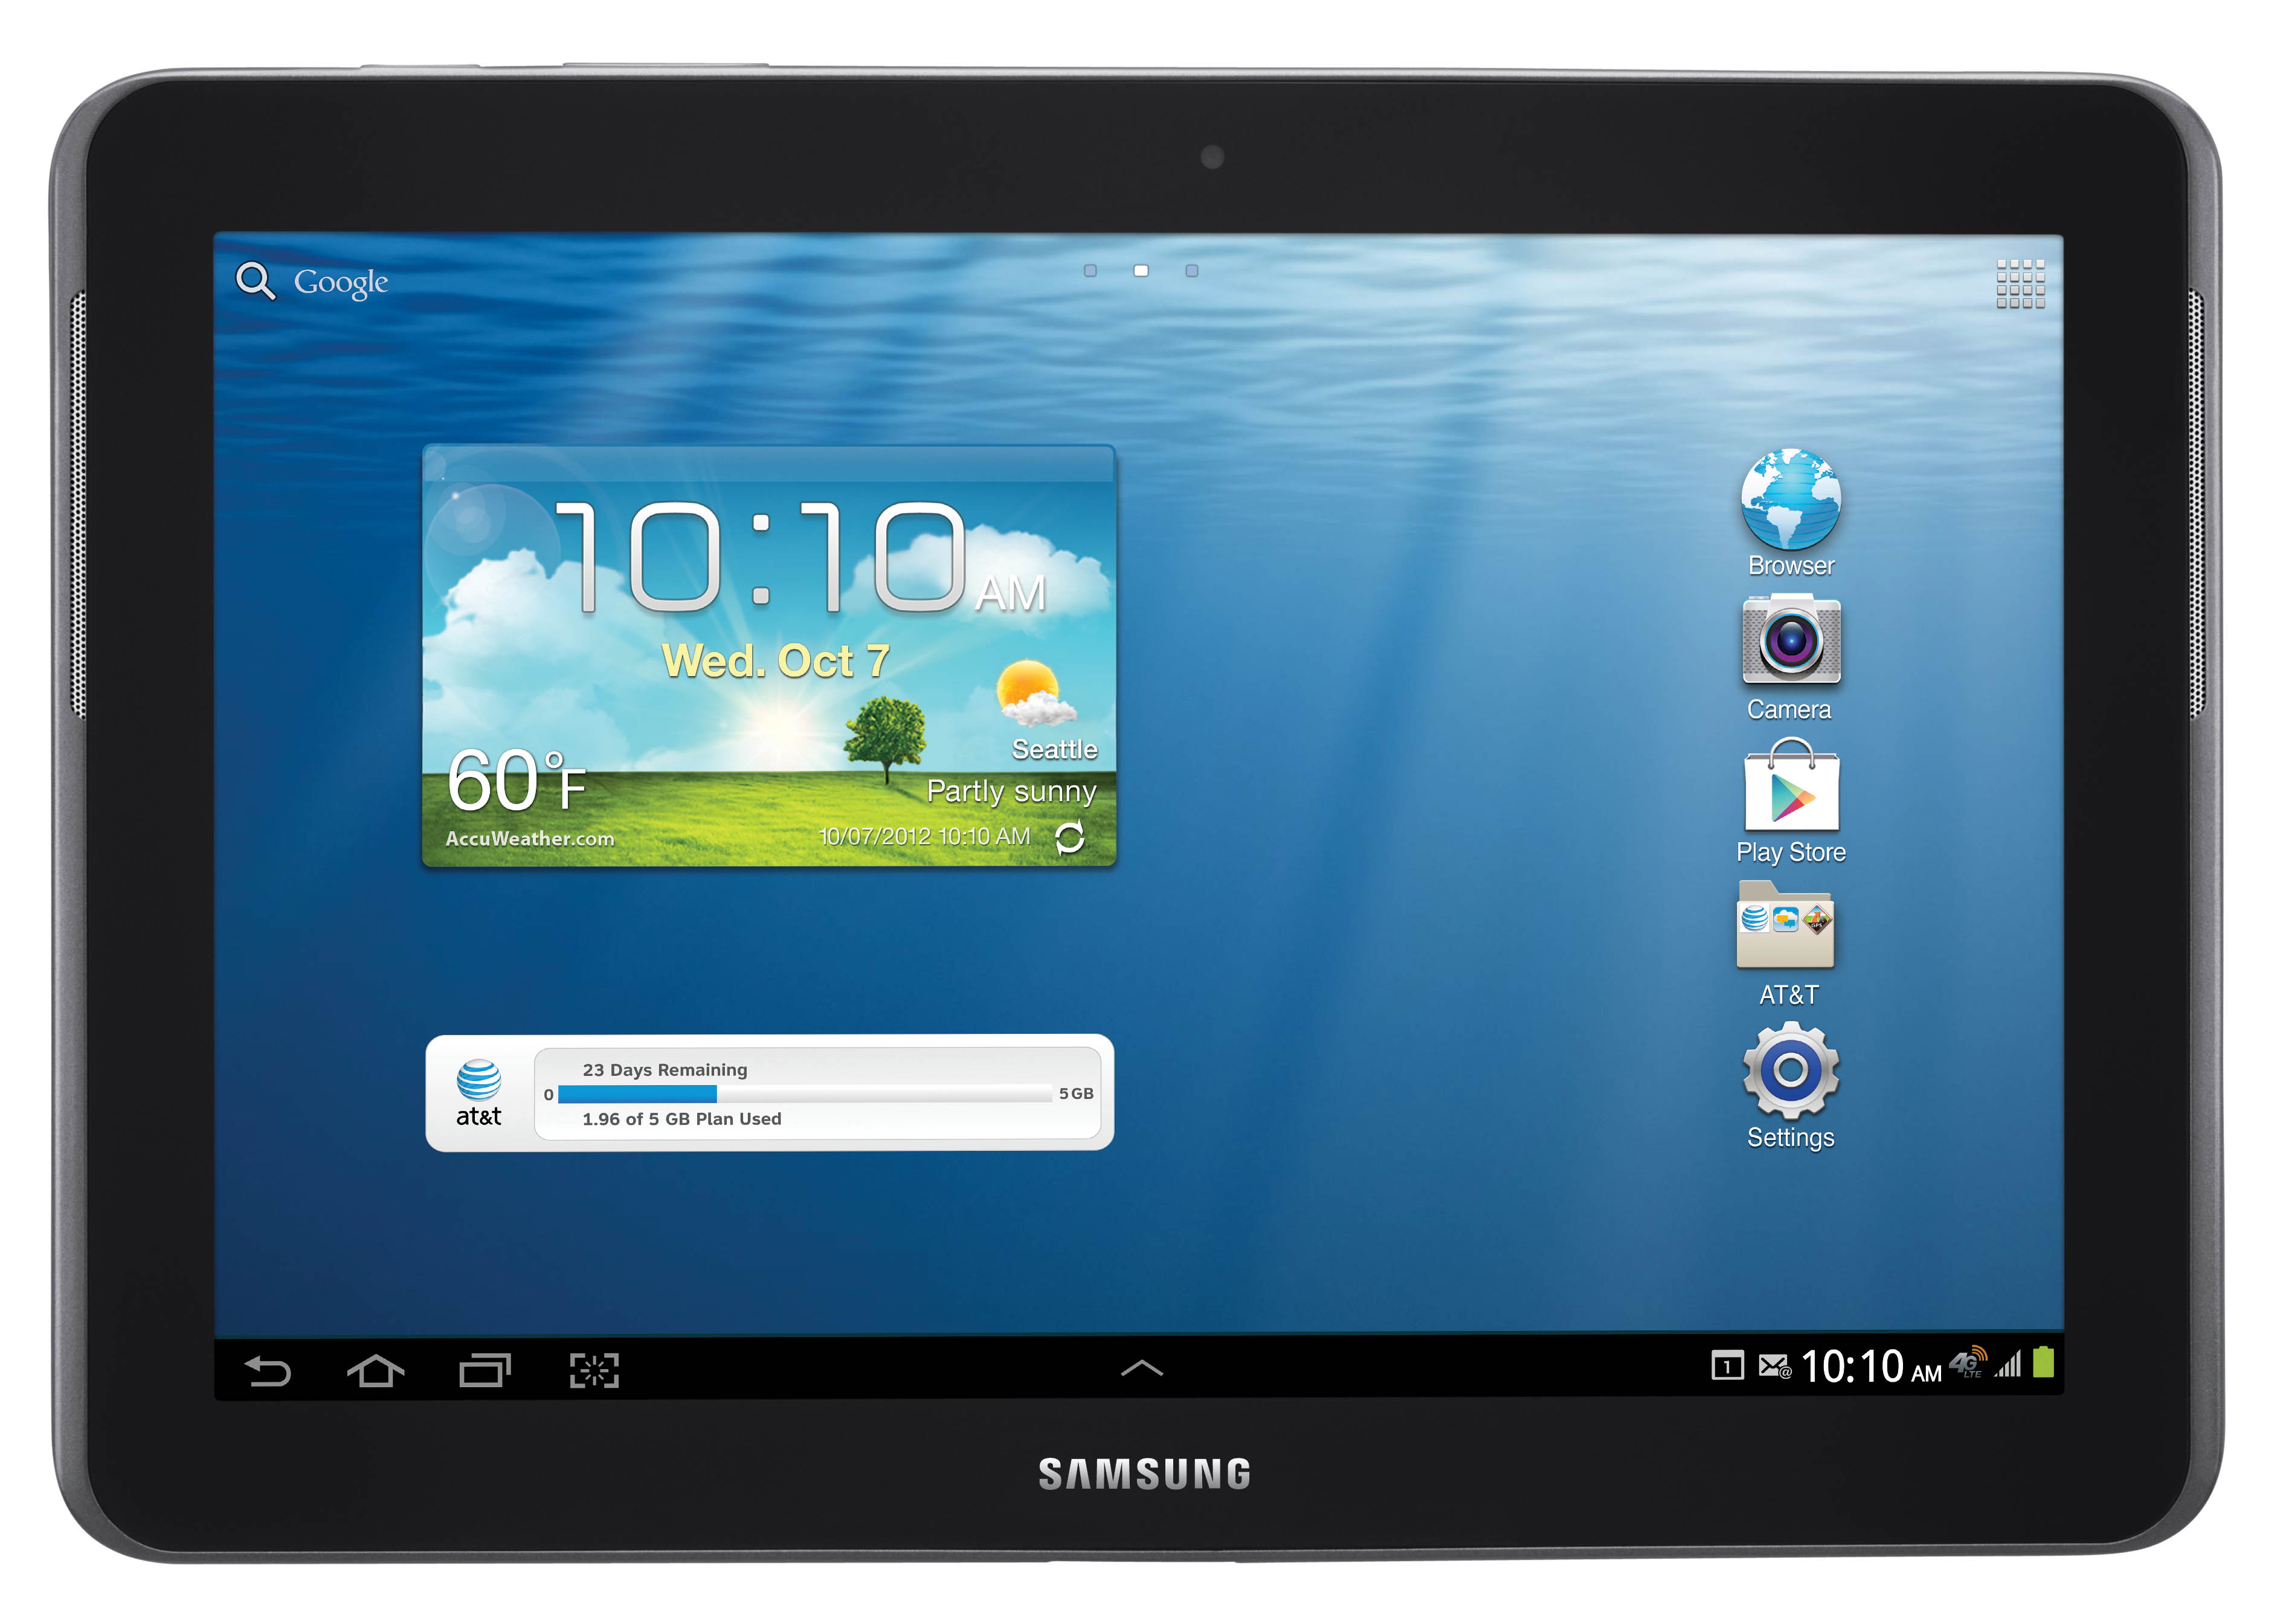 Samsung Tablet Pictures 3779x2688